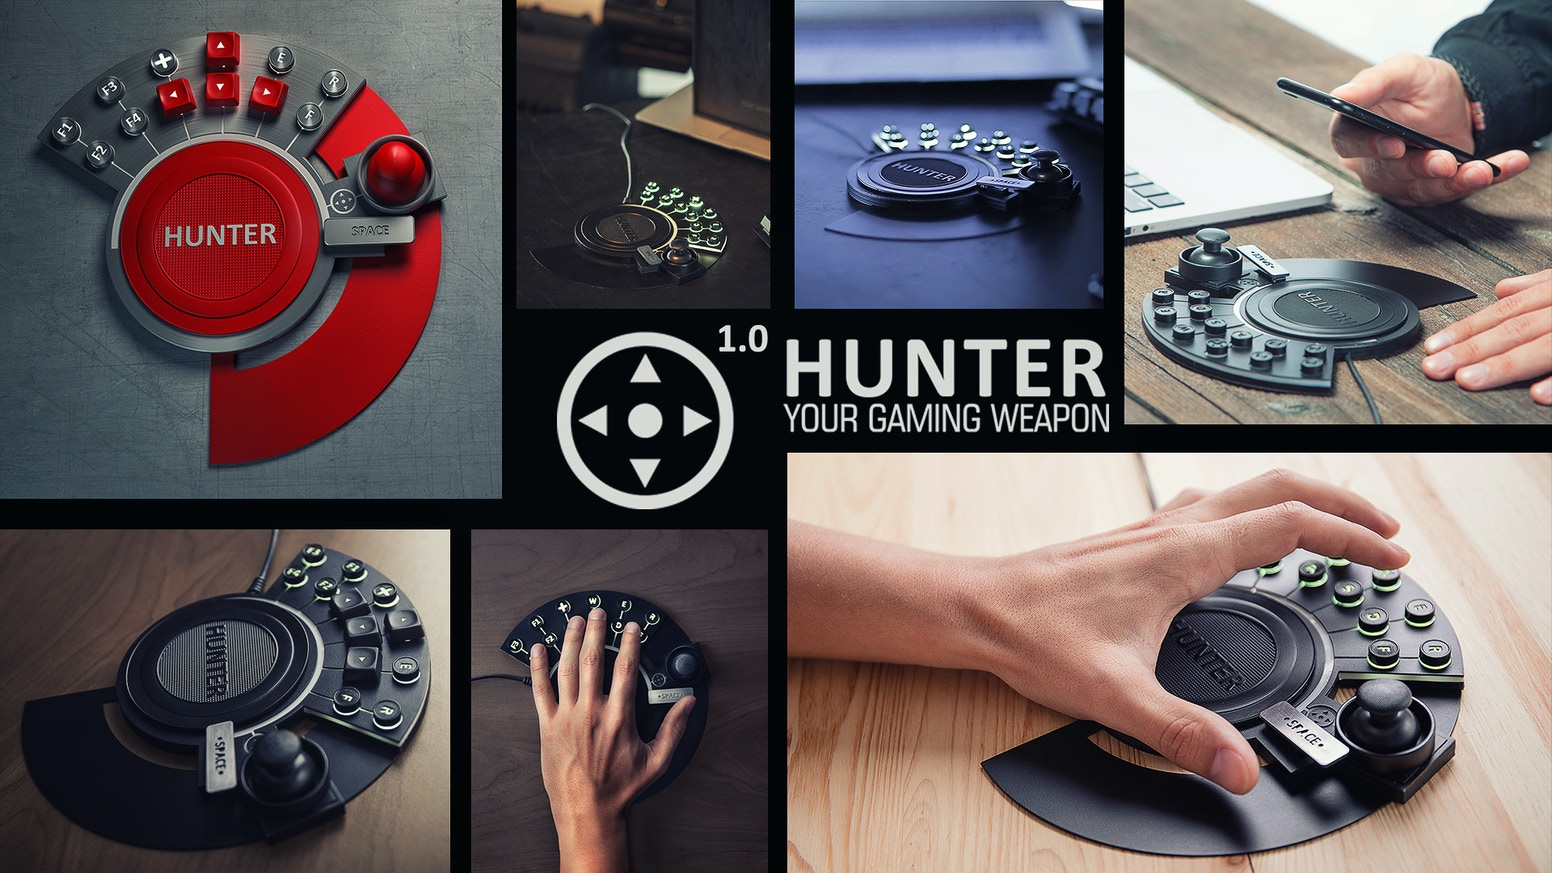 With mechanical mini gamepad HUNTER 1.0 you can keep your win under control